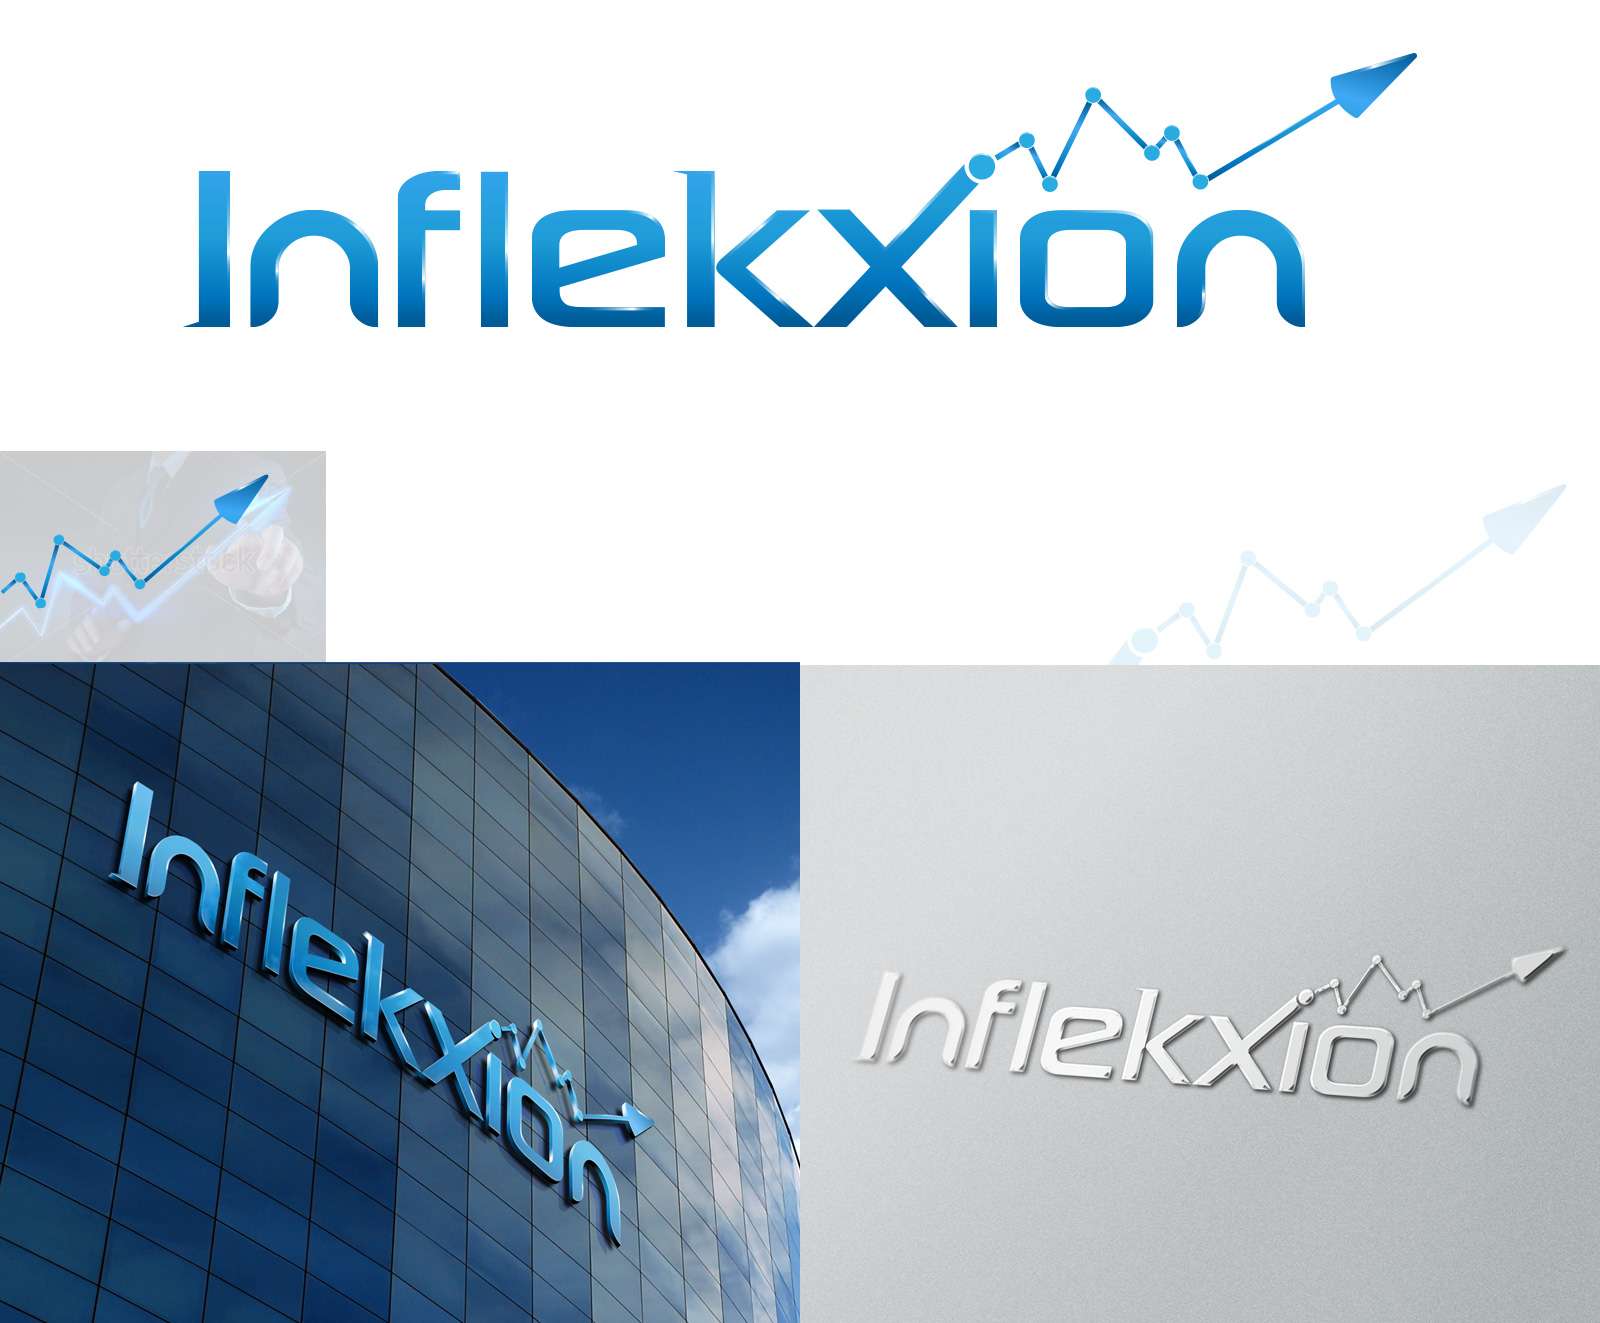 Logo Design by olii - Entry No. 132 in the Logo Design Contest Professional Logo Design for Inflekxion.